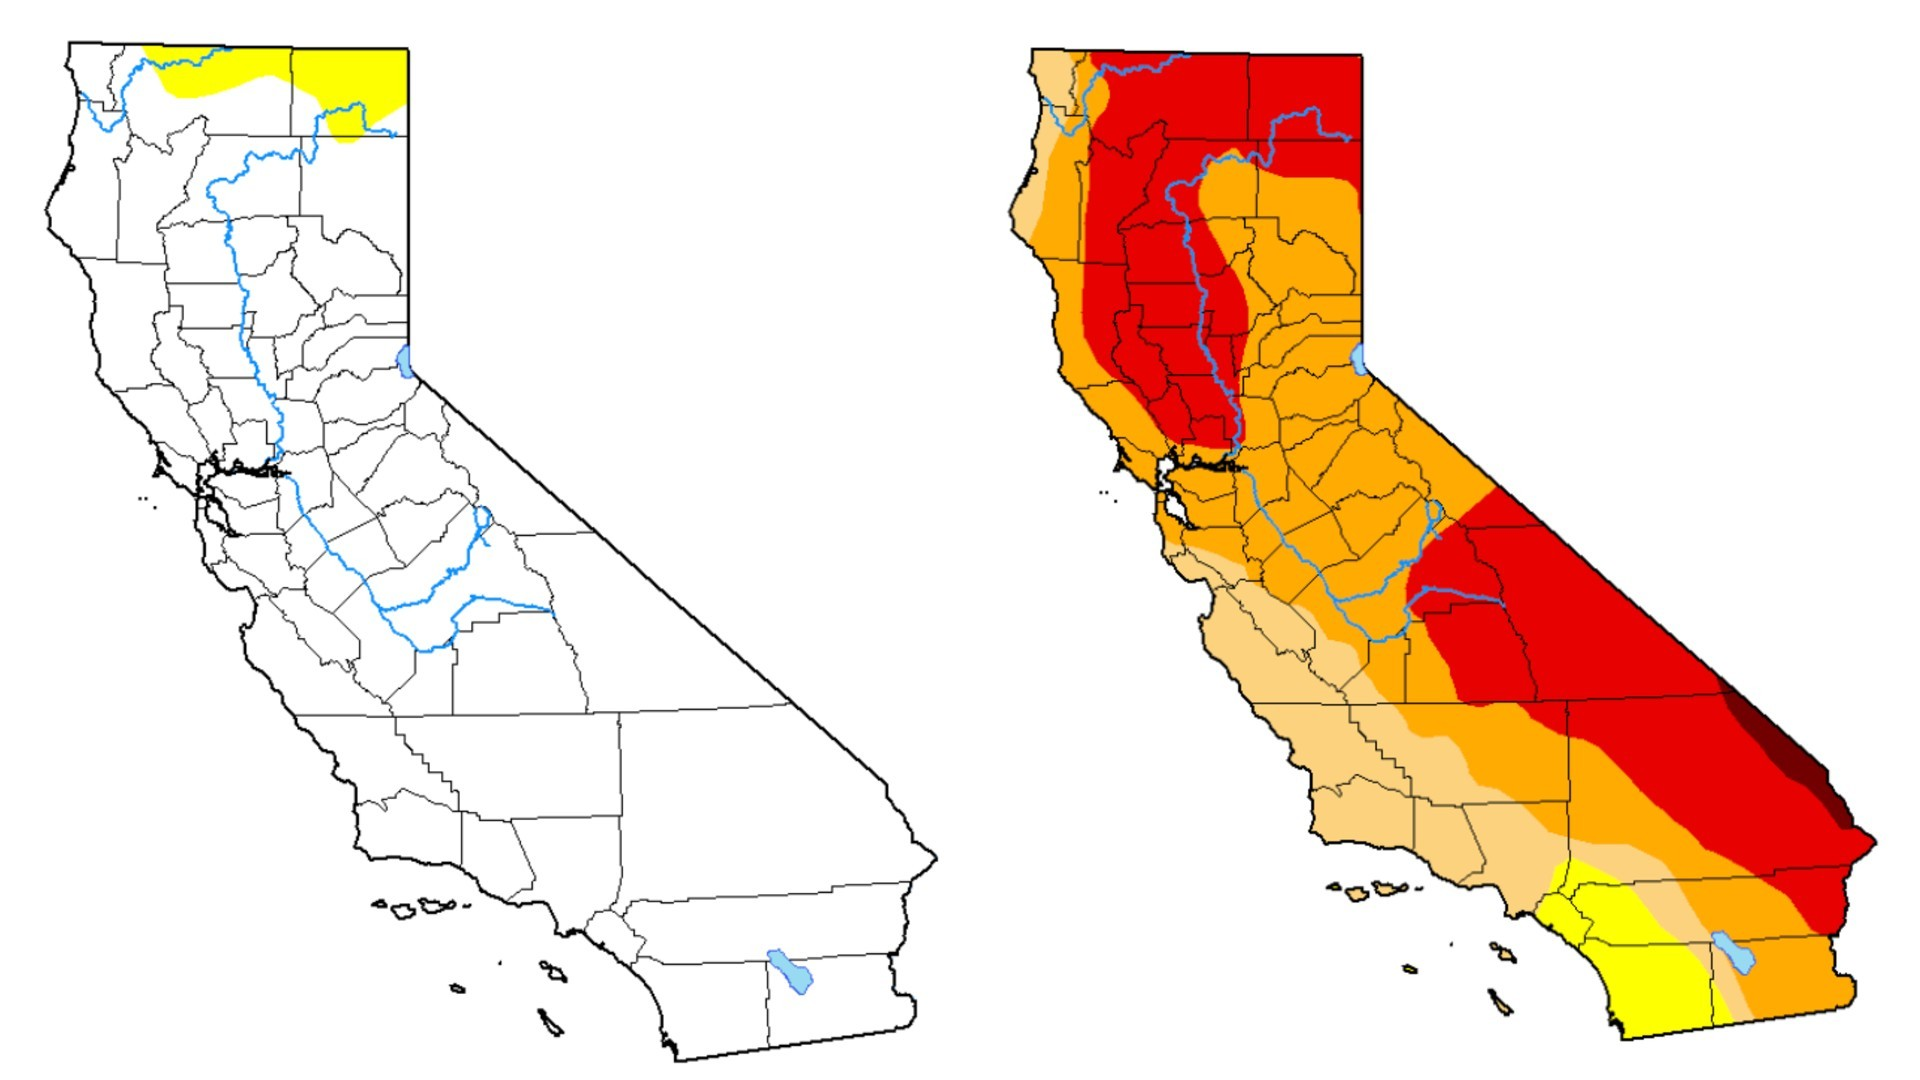 Left: The drought map from Jan. 21, 2020, shows a drought-free California, with only a small percentage of the state experiencing abnormally dry conditions; Right: The drought map from Jan. 19, 2021, shows the majority of California is mired in drought. (U.S. Drought Monitor)